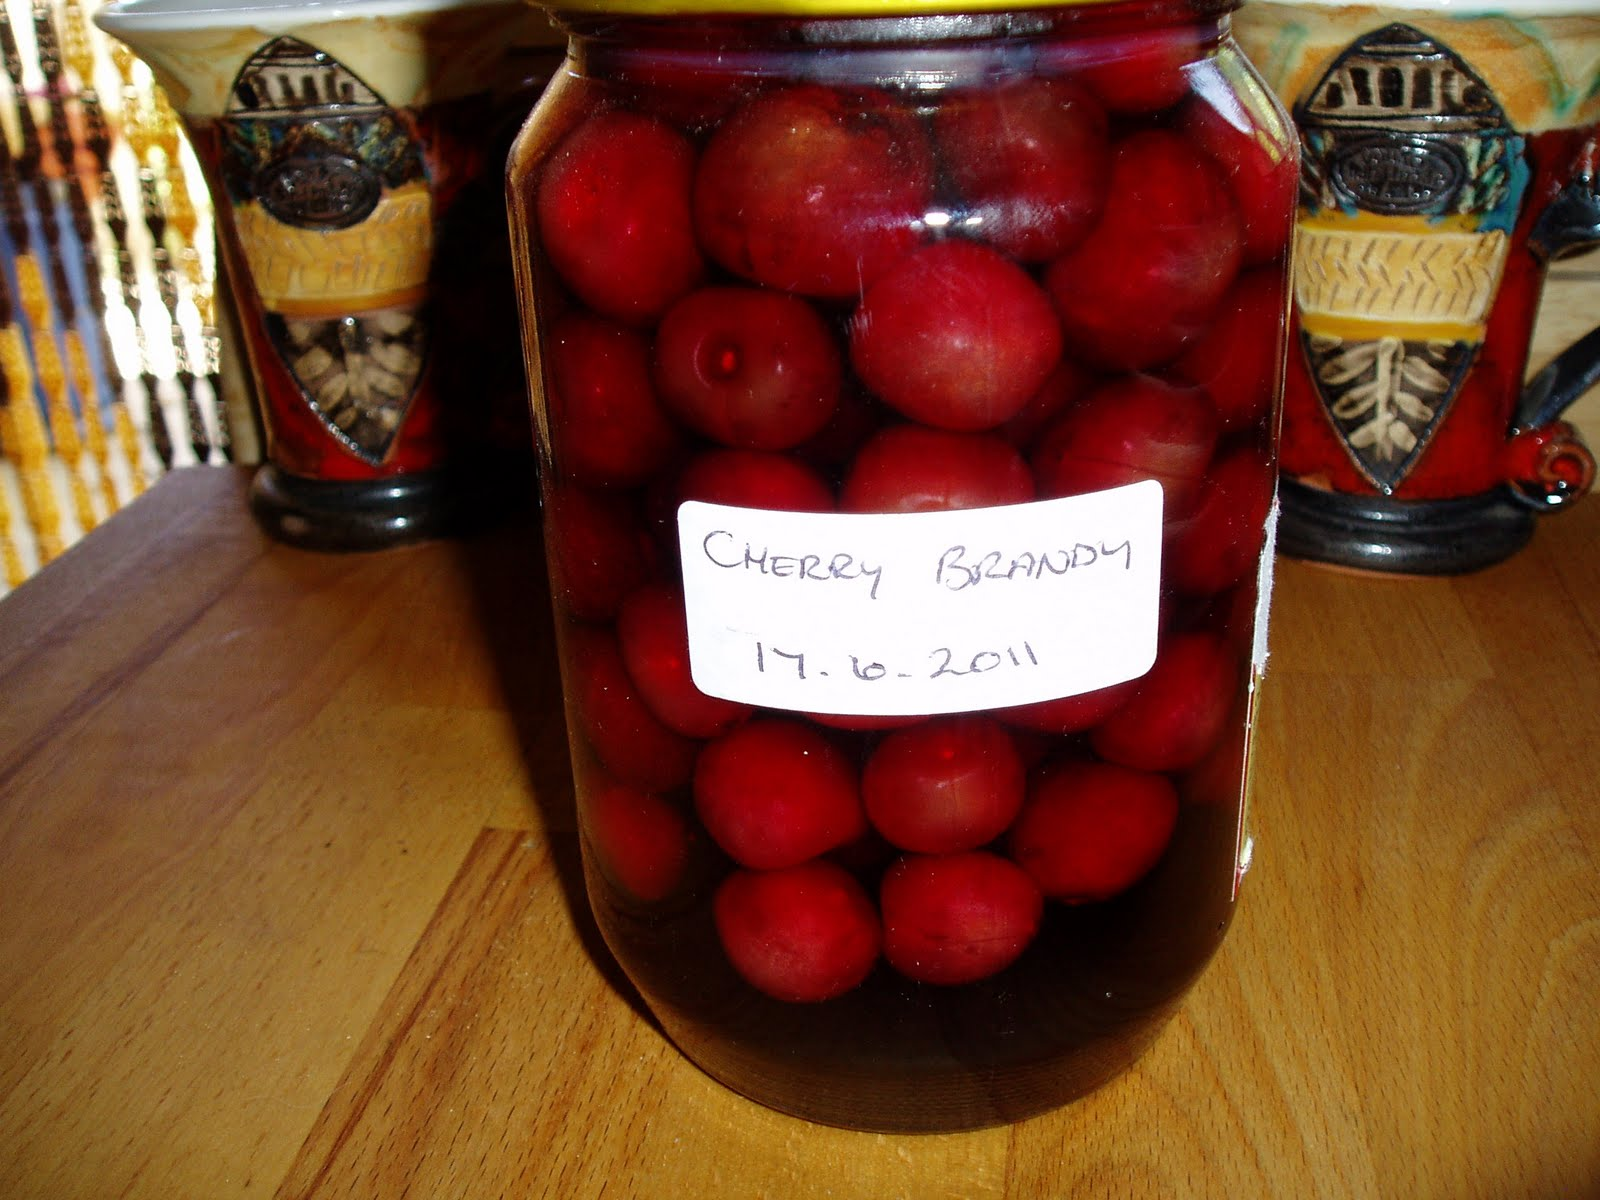 Bulgarian village recipes cherry brandy recipe friday 8 july 2011 forumfinder Choice Image